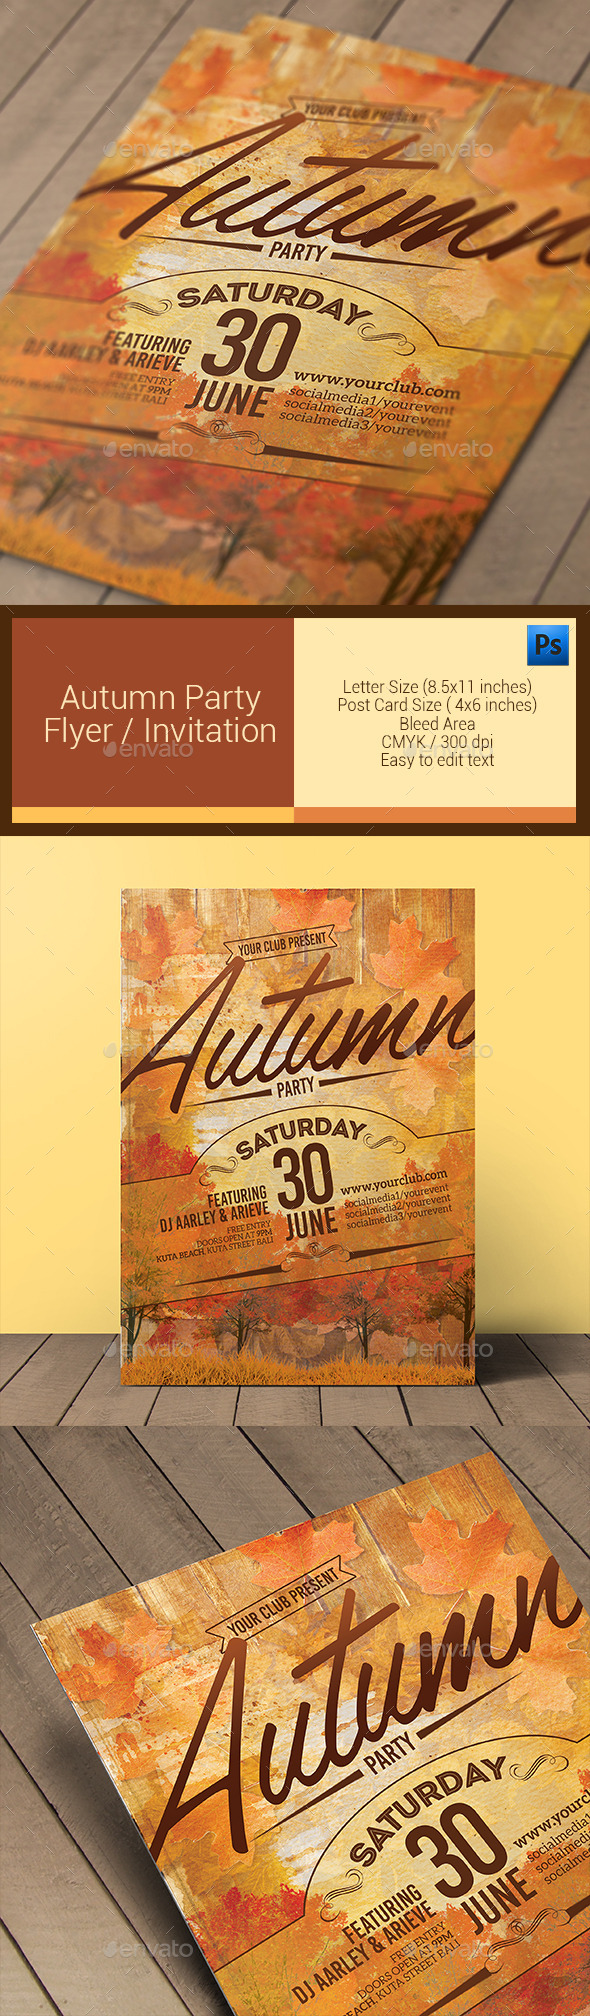 GraphicRiver Autumn Party Flyer Invitation 11101287